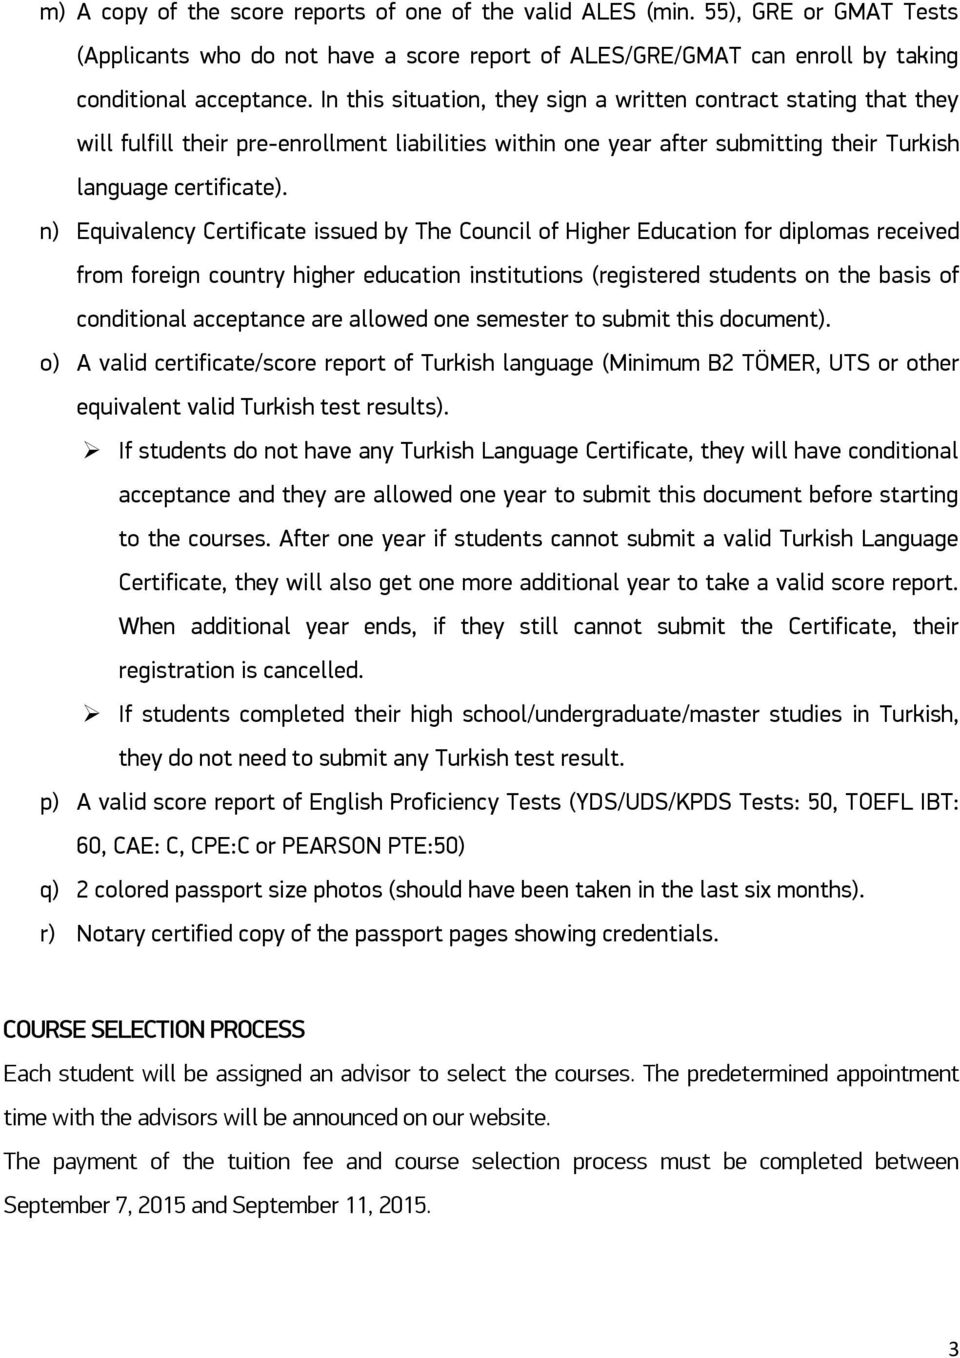 n) Equivalency Certificate issued by The Council of Higher Education for diplomas received from foreign country higher education institutions (registered students on the basis of conditional